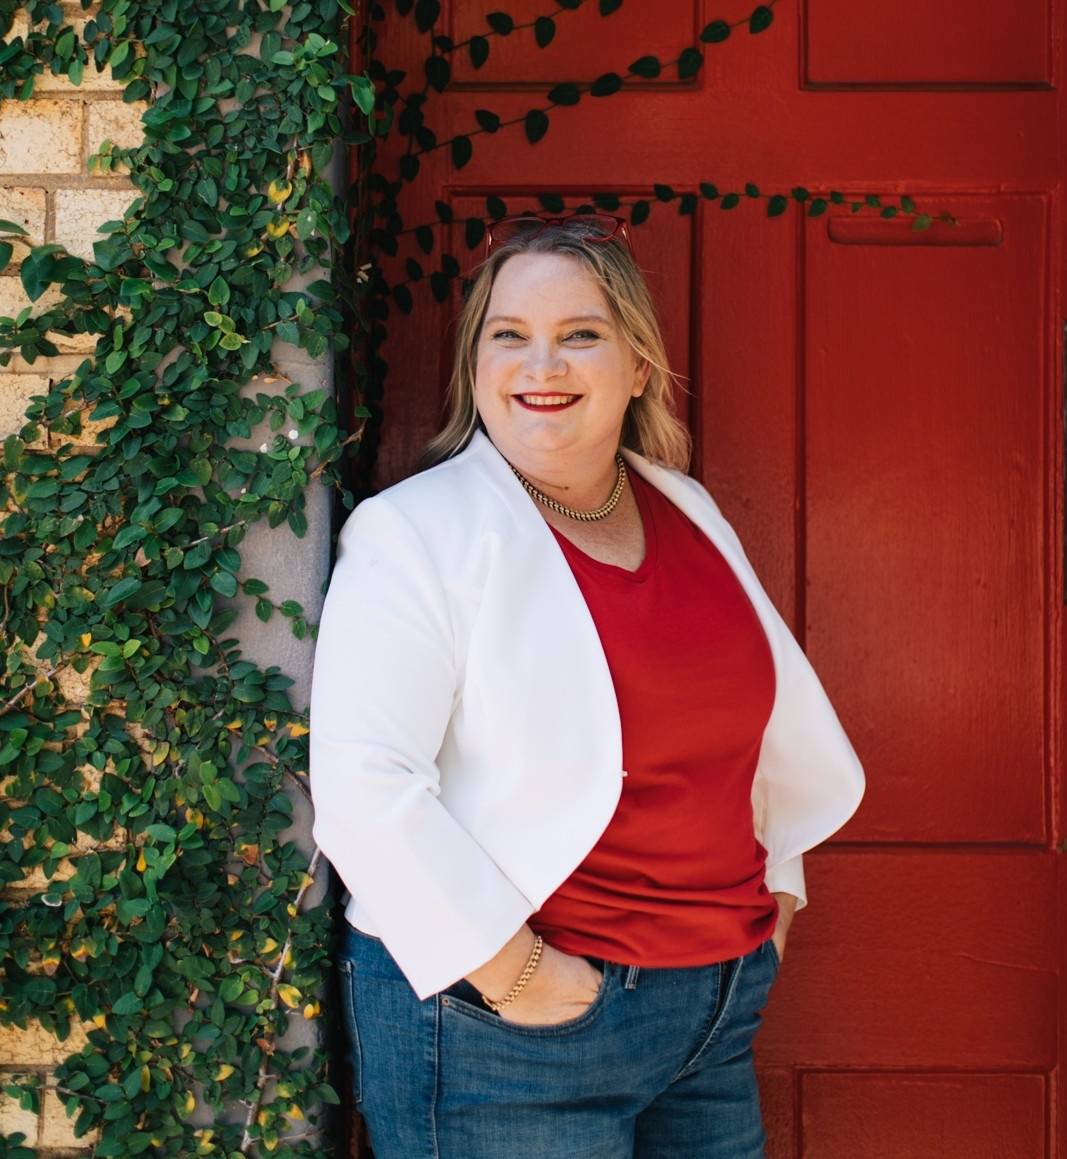 Power woman wearing a red shirt and white blazer standing against red door with ivy growing over it- Juanita Wheeler from Full and Frank for the cover of Viva La Flora Live Podcast